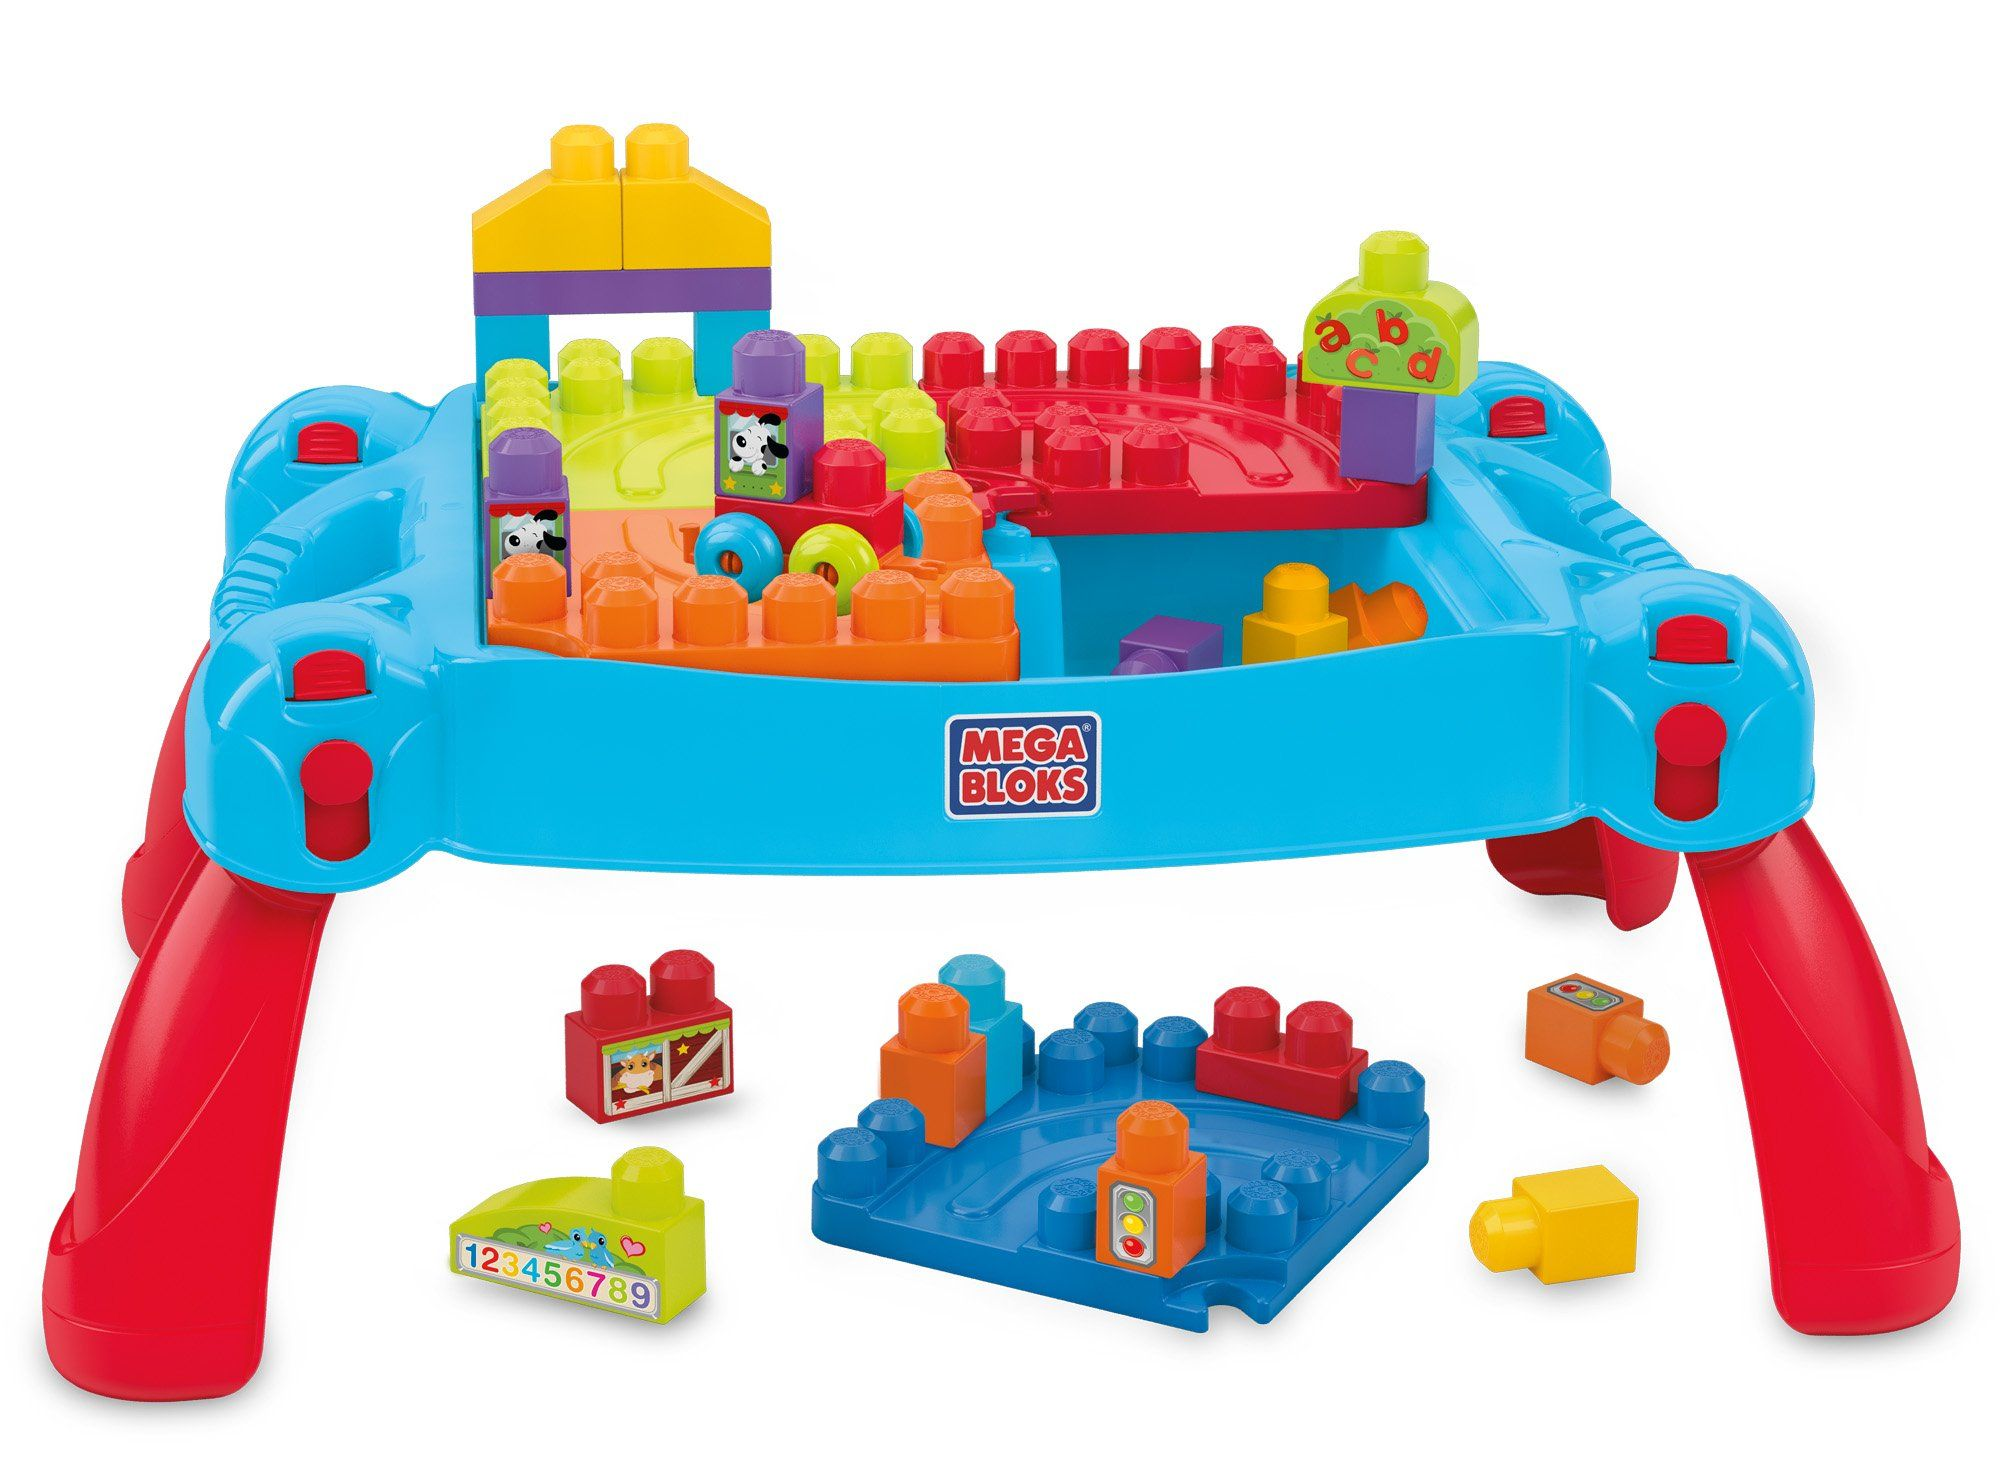 Best Gifts And Toys For 1 Year Old Boys Gift Ideas For